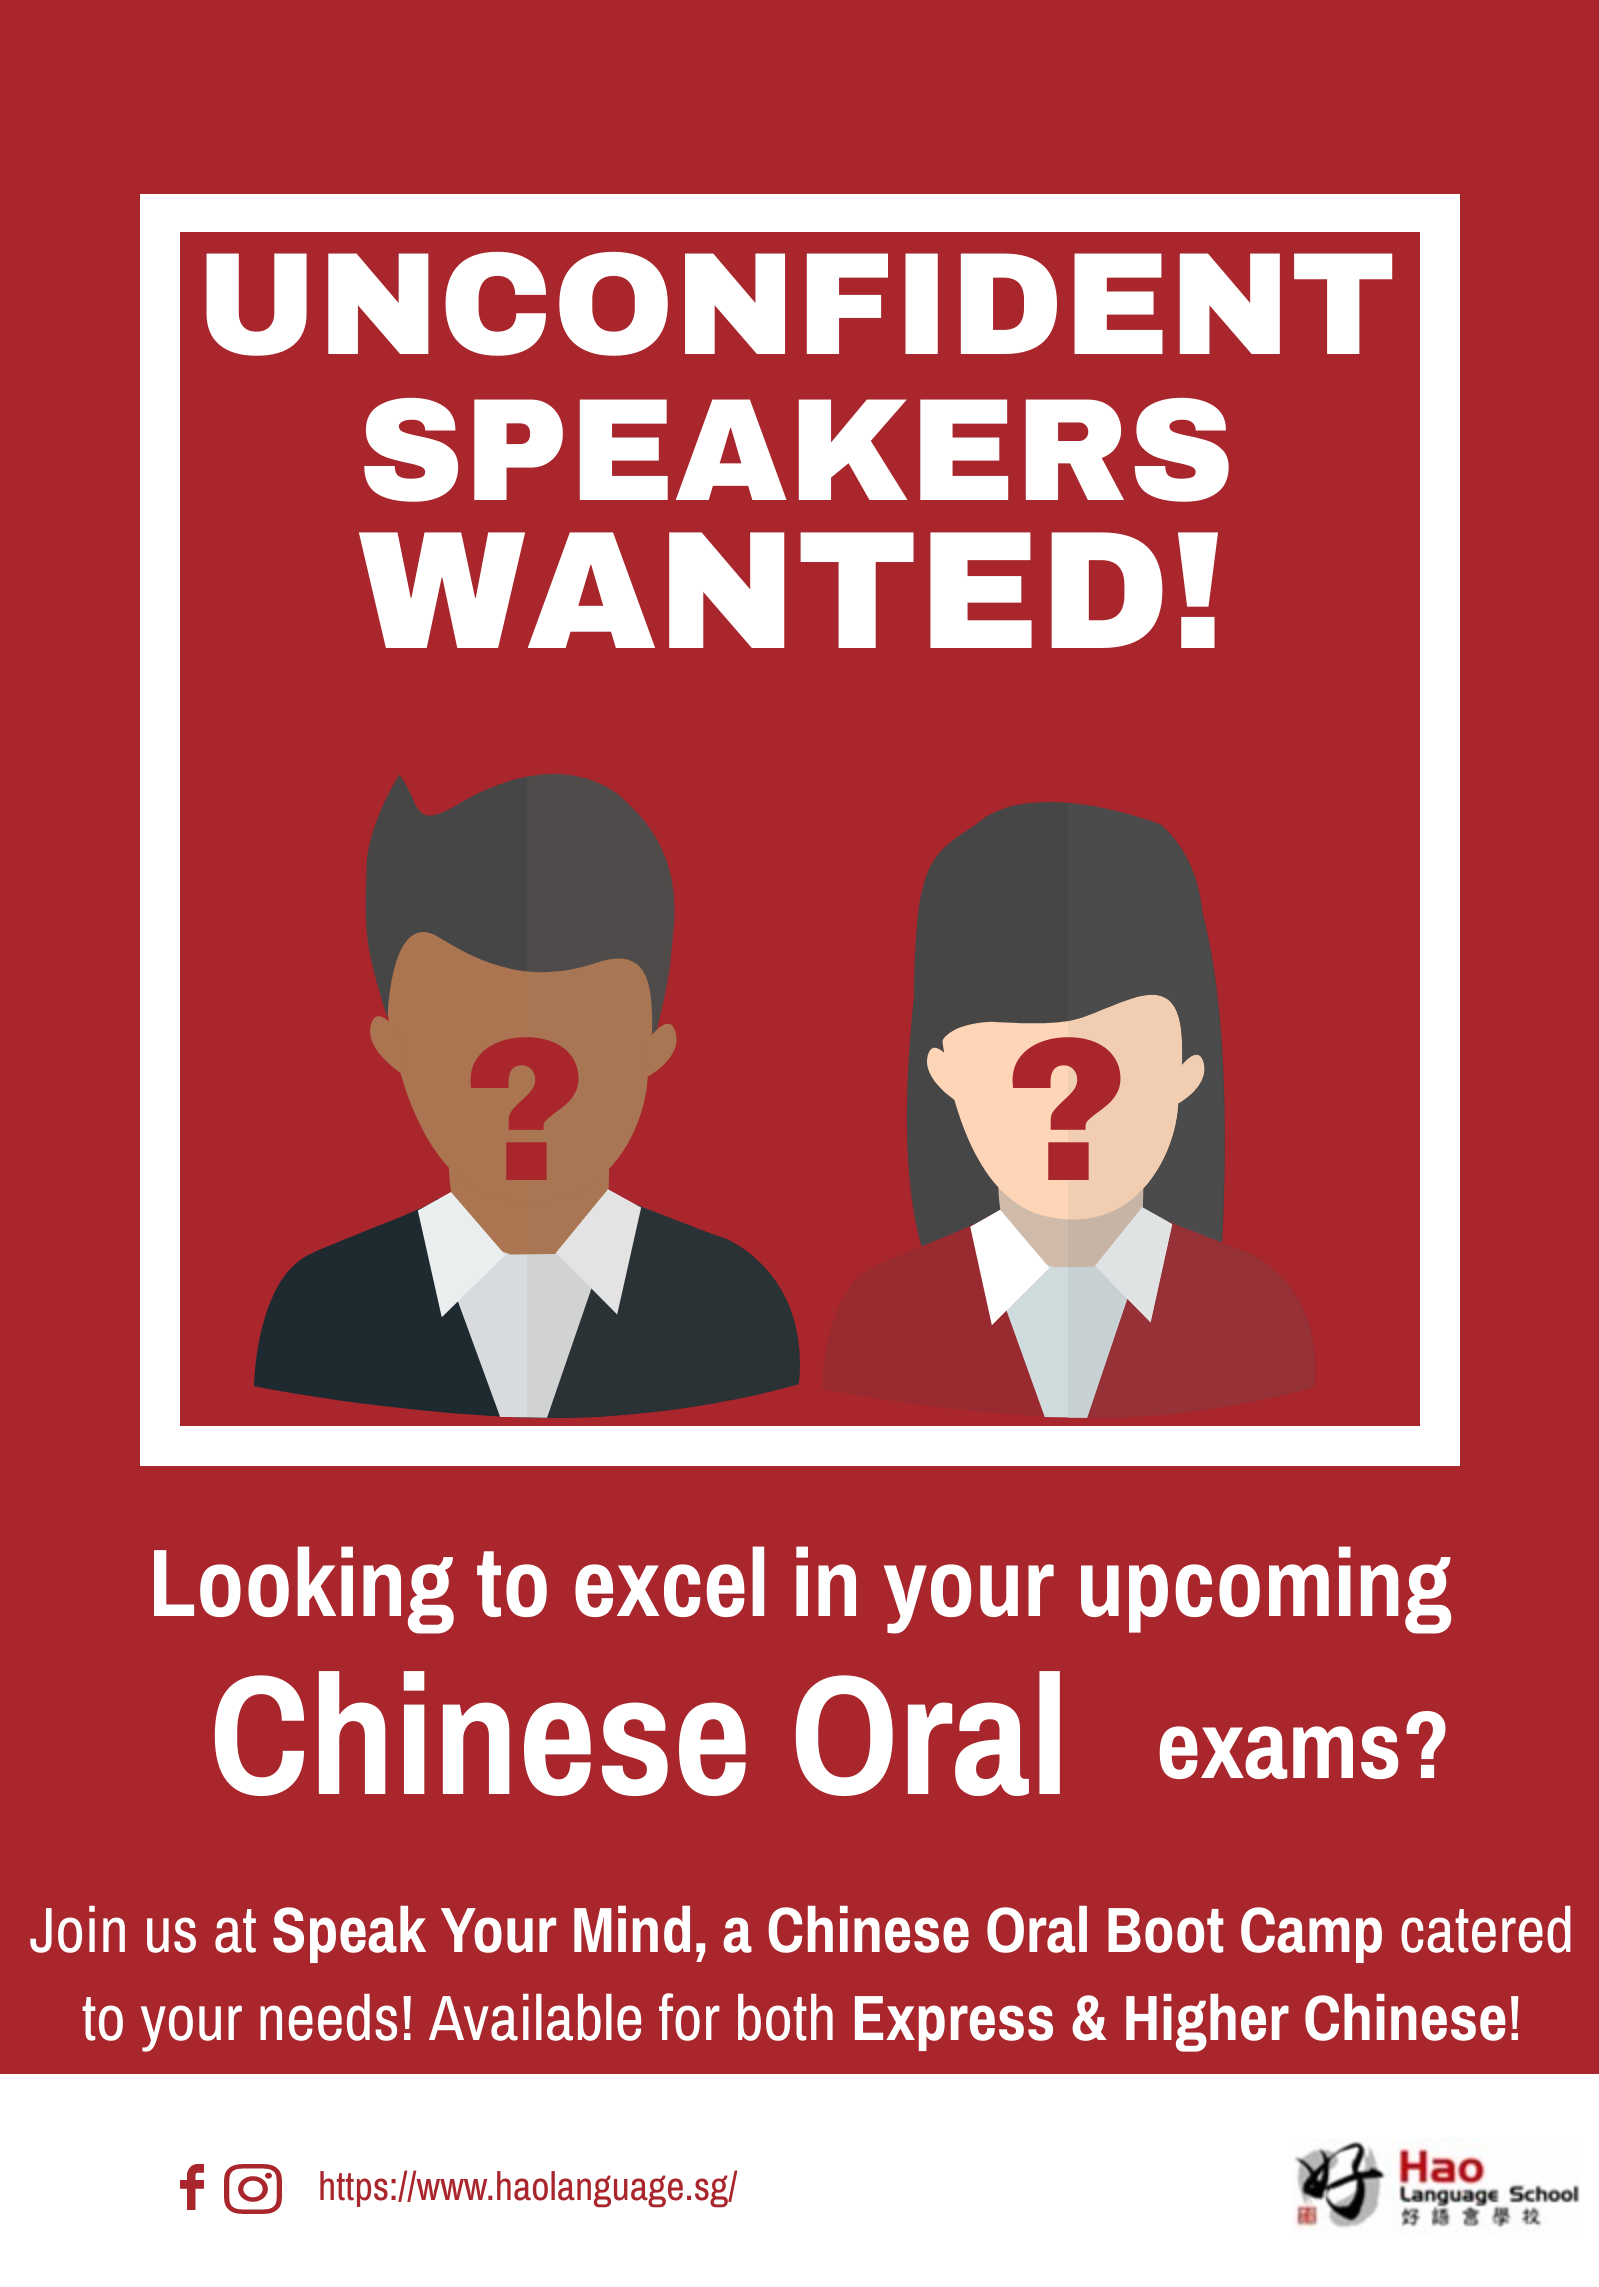 June Holiday Special Programmes: Express & Higher Chinese Oral Boot Camp